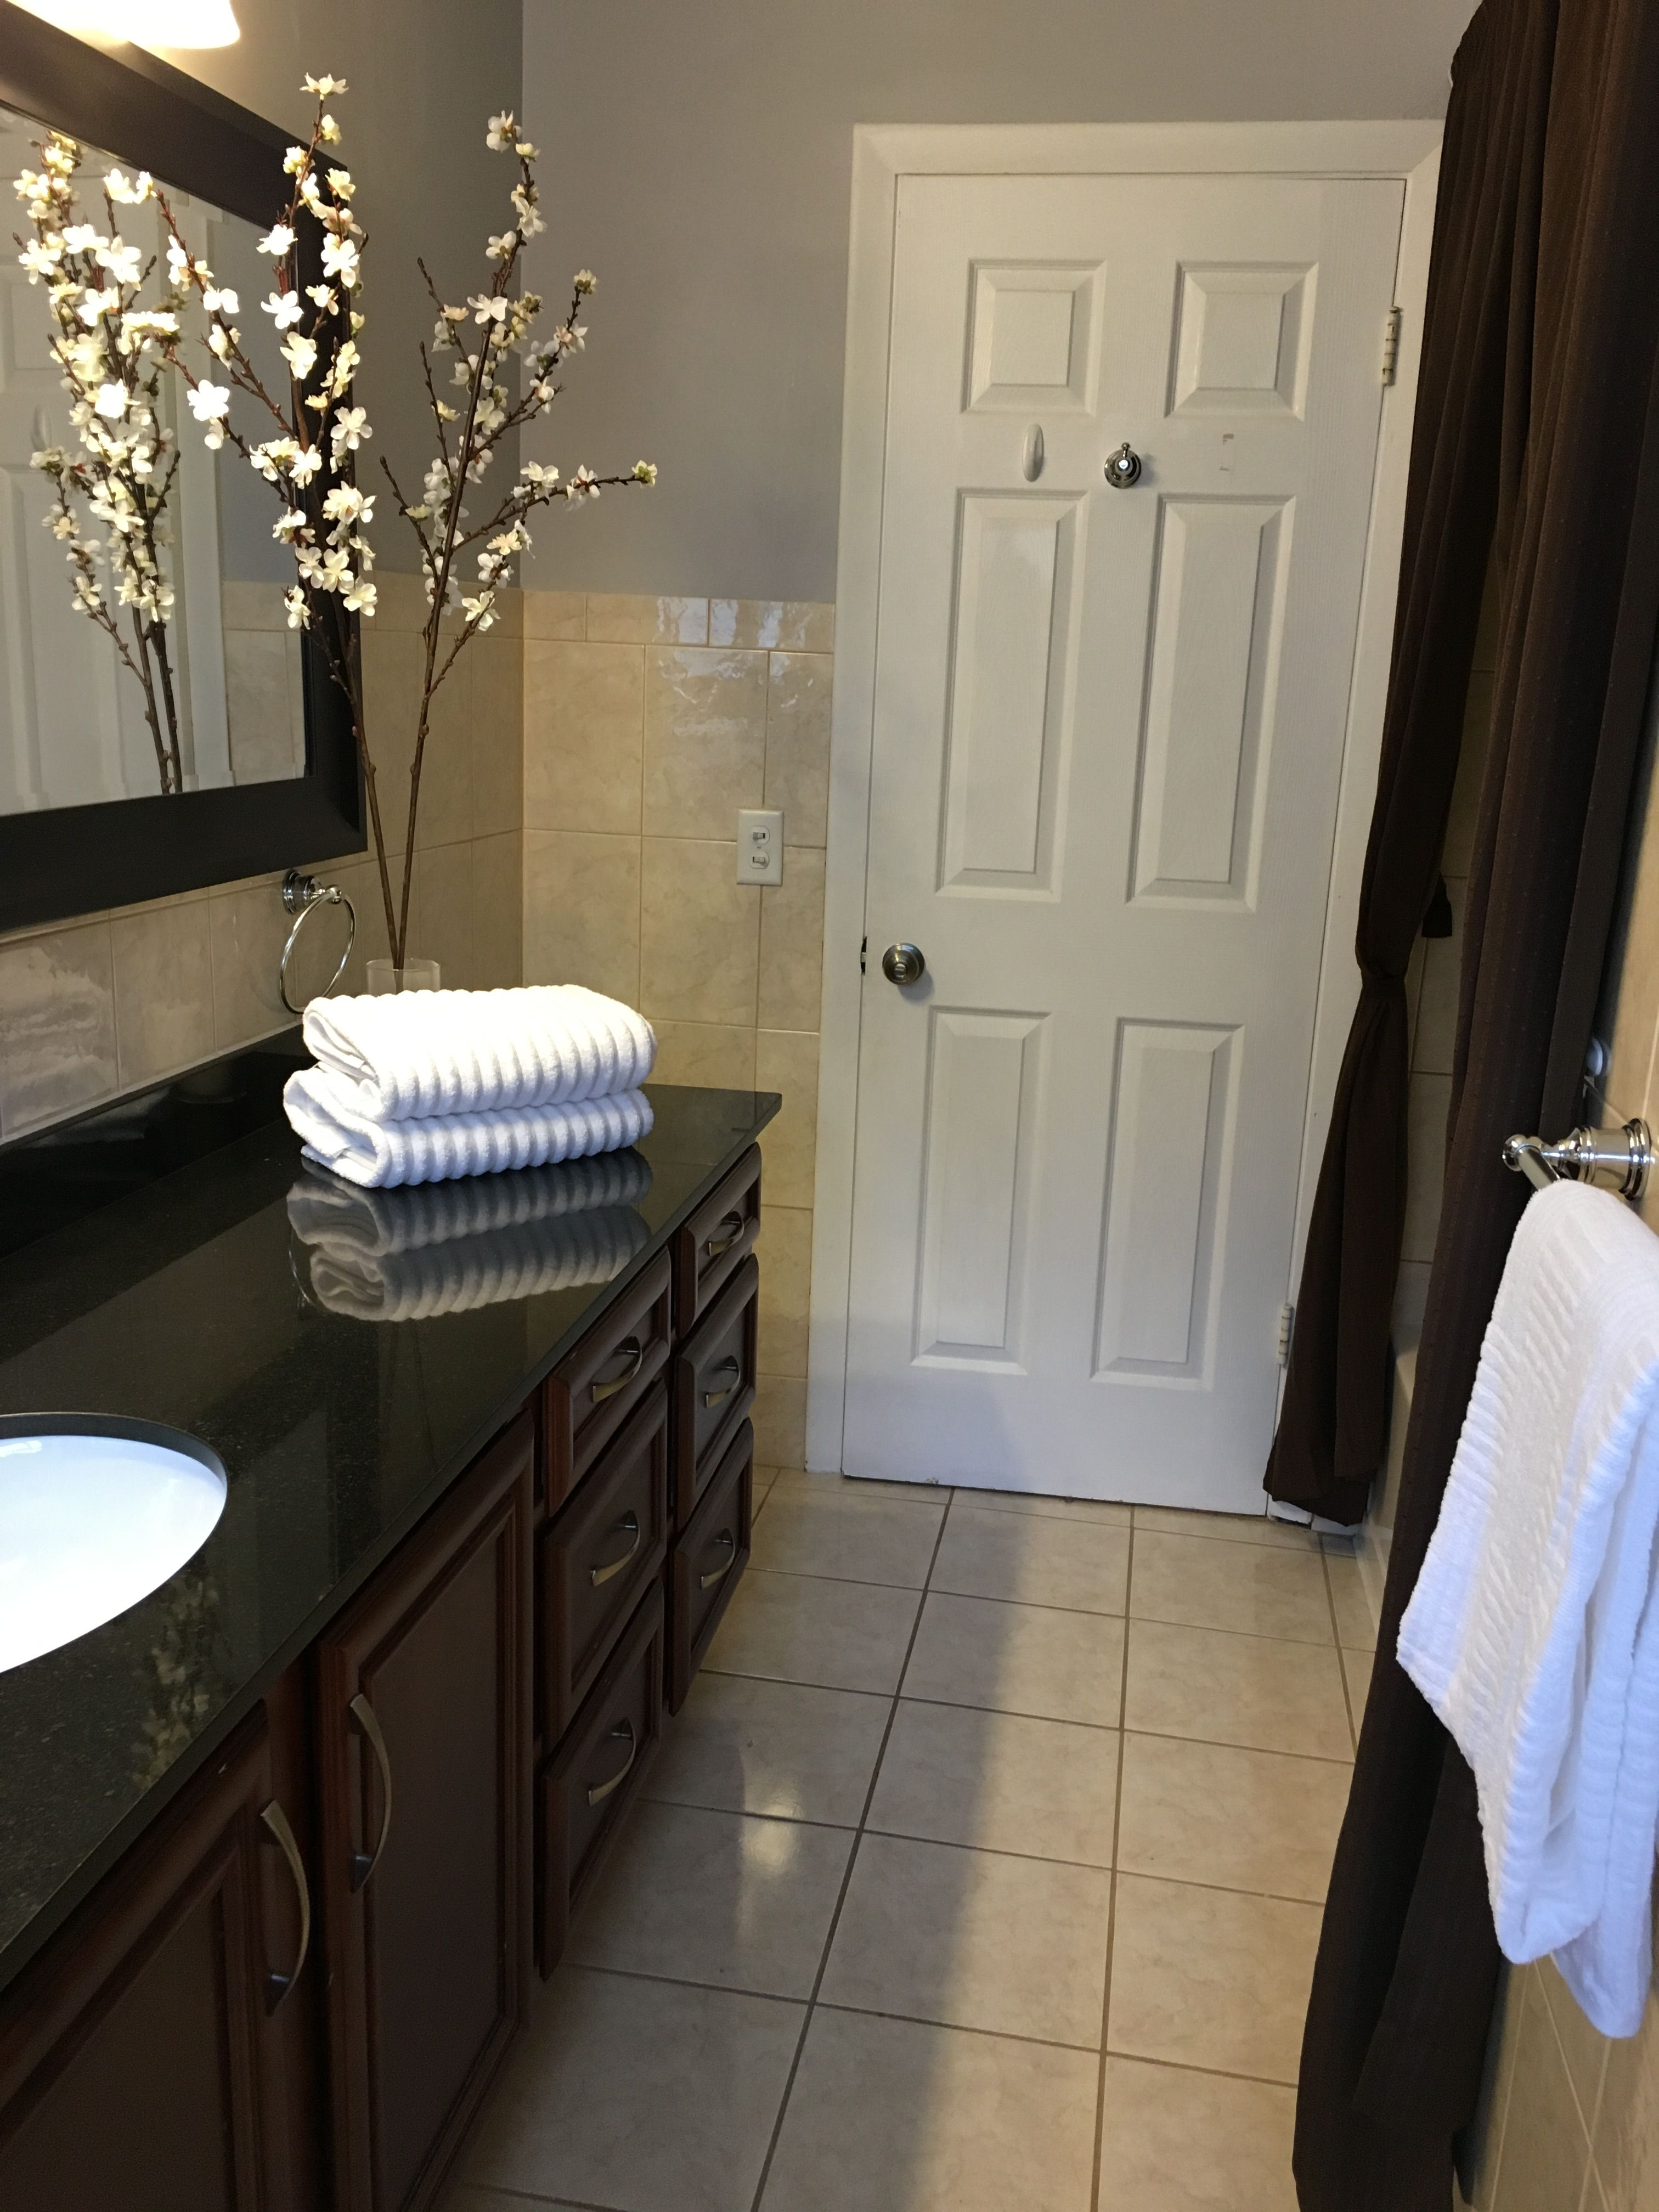 Bathroom Makeovers To Sell bathroom makeover for staging a house to sell. …   pinteres…